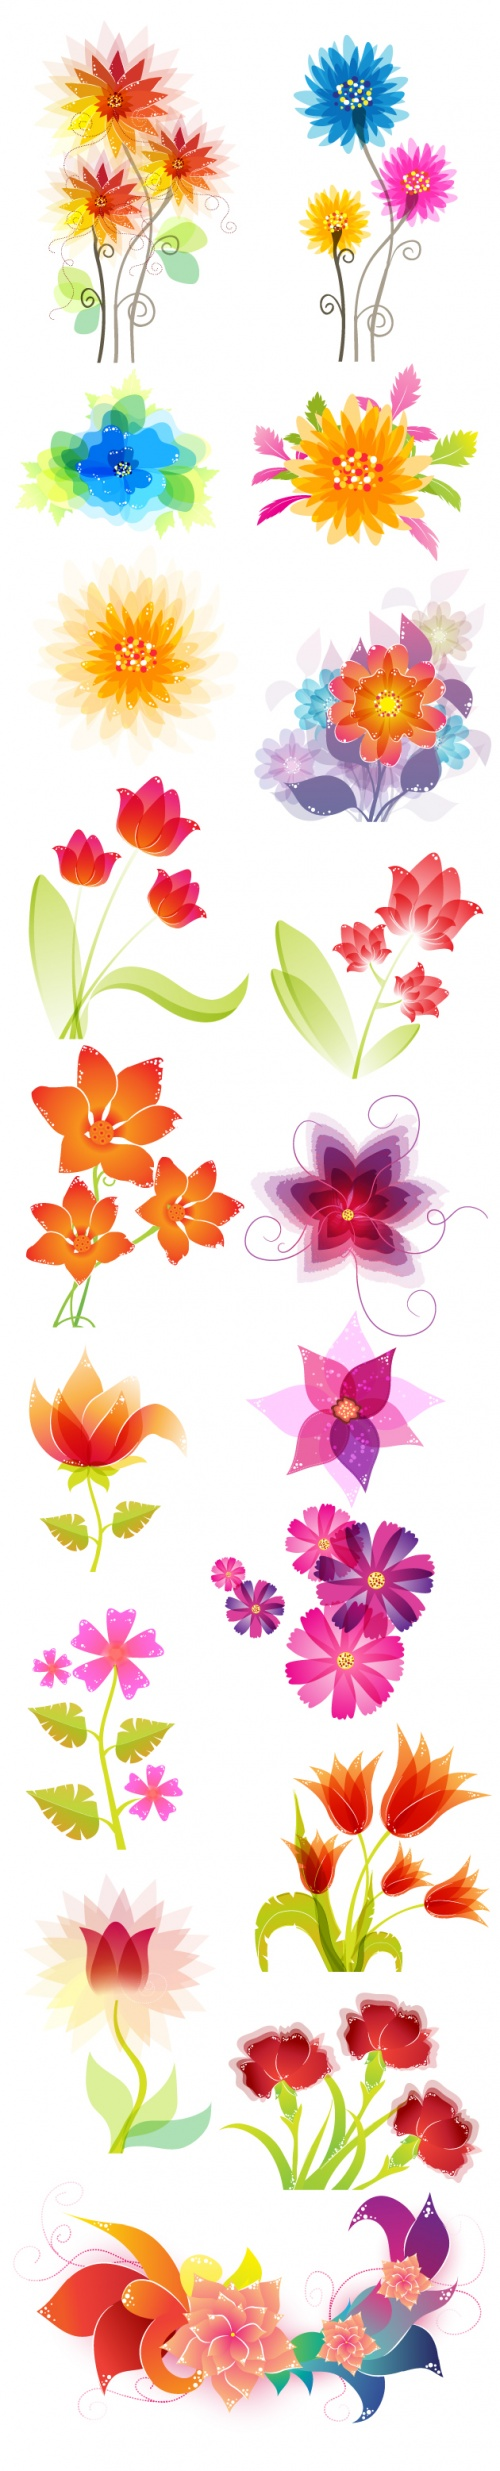 Designtnt - Vector Floral Ornaments Set 4